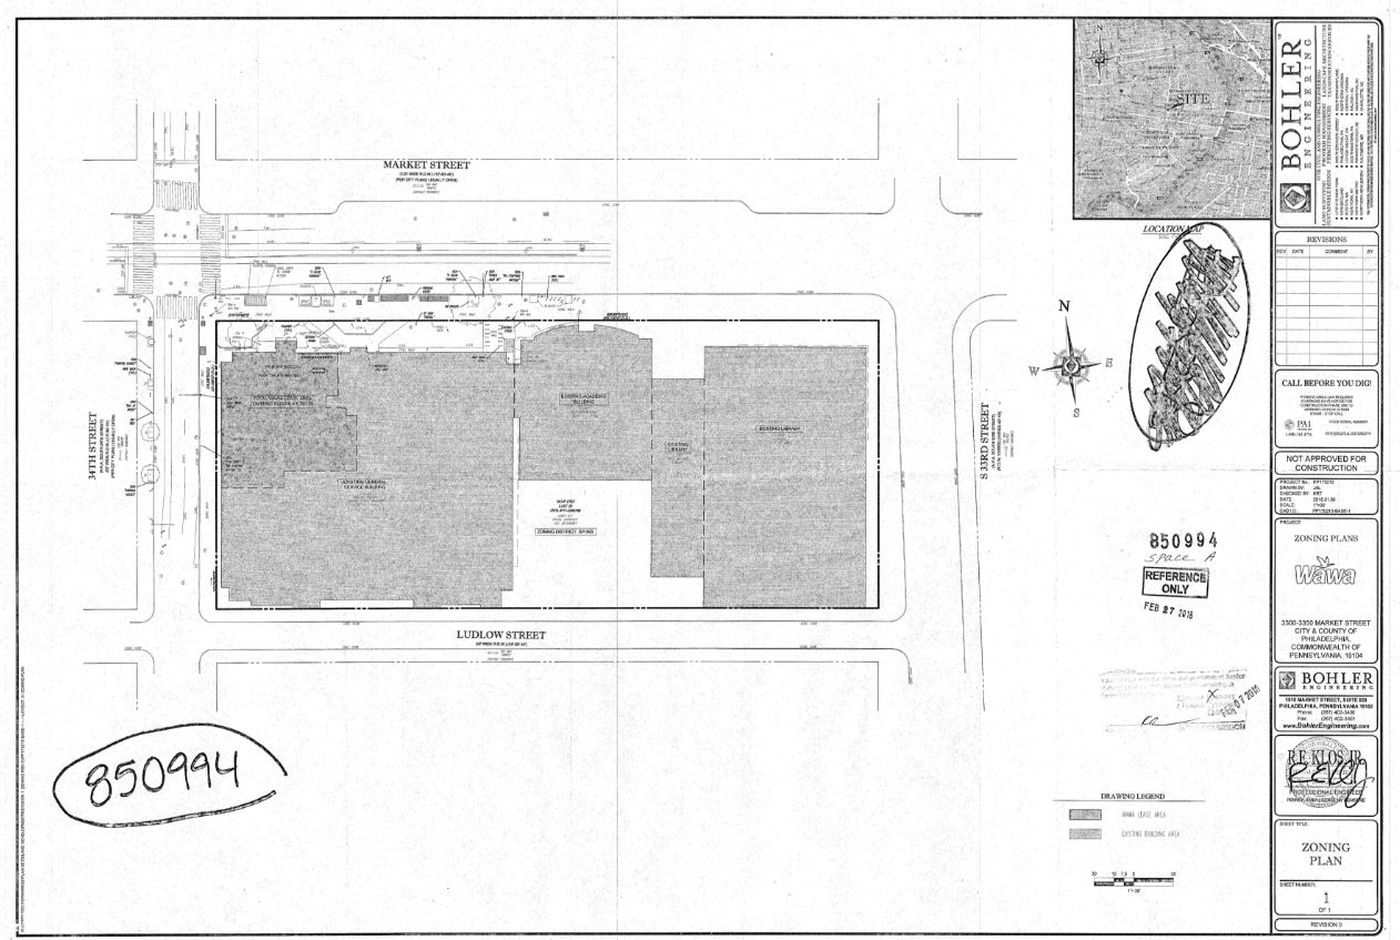 Wawa planned for Drexel's campus on